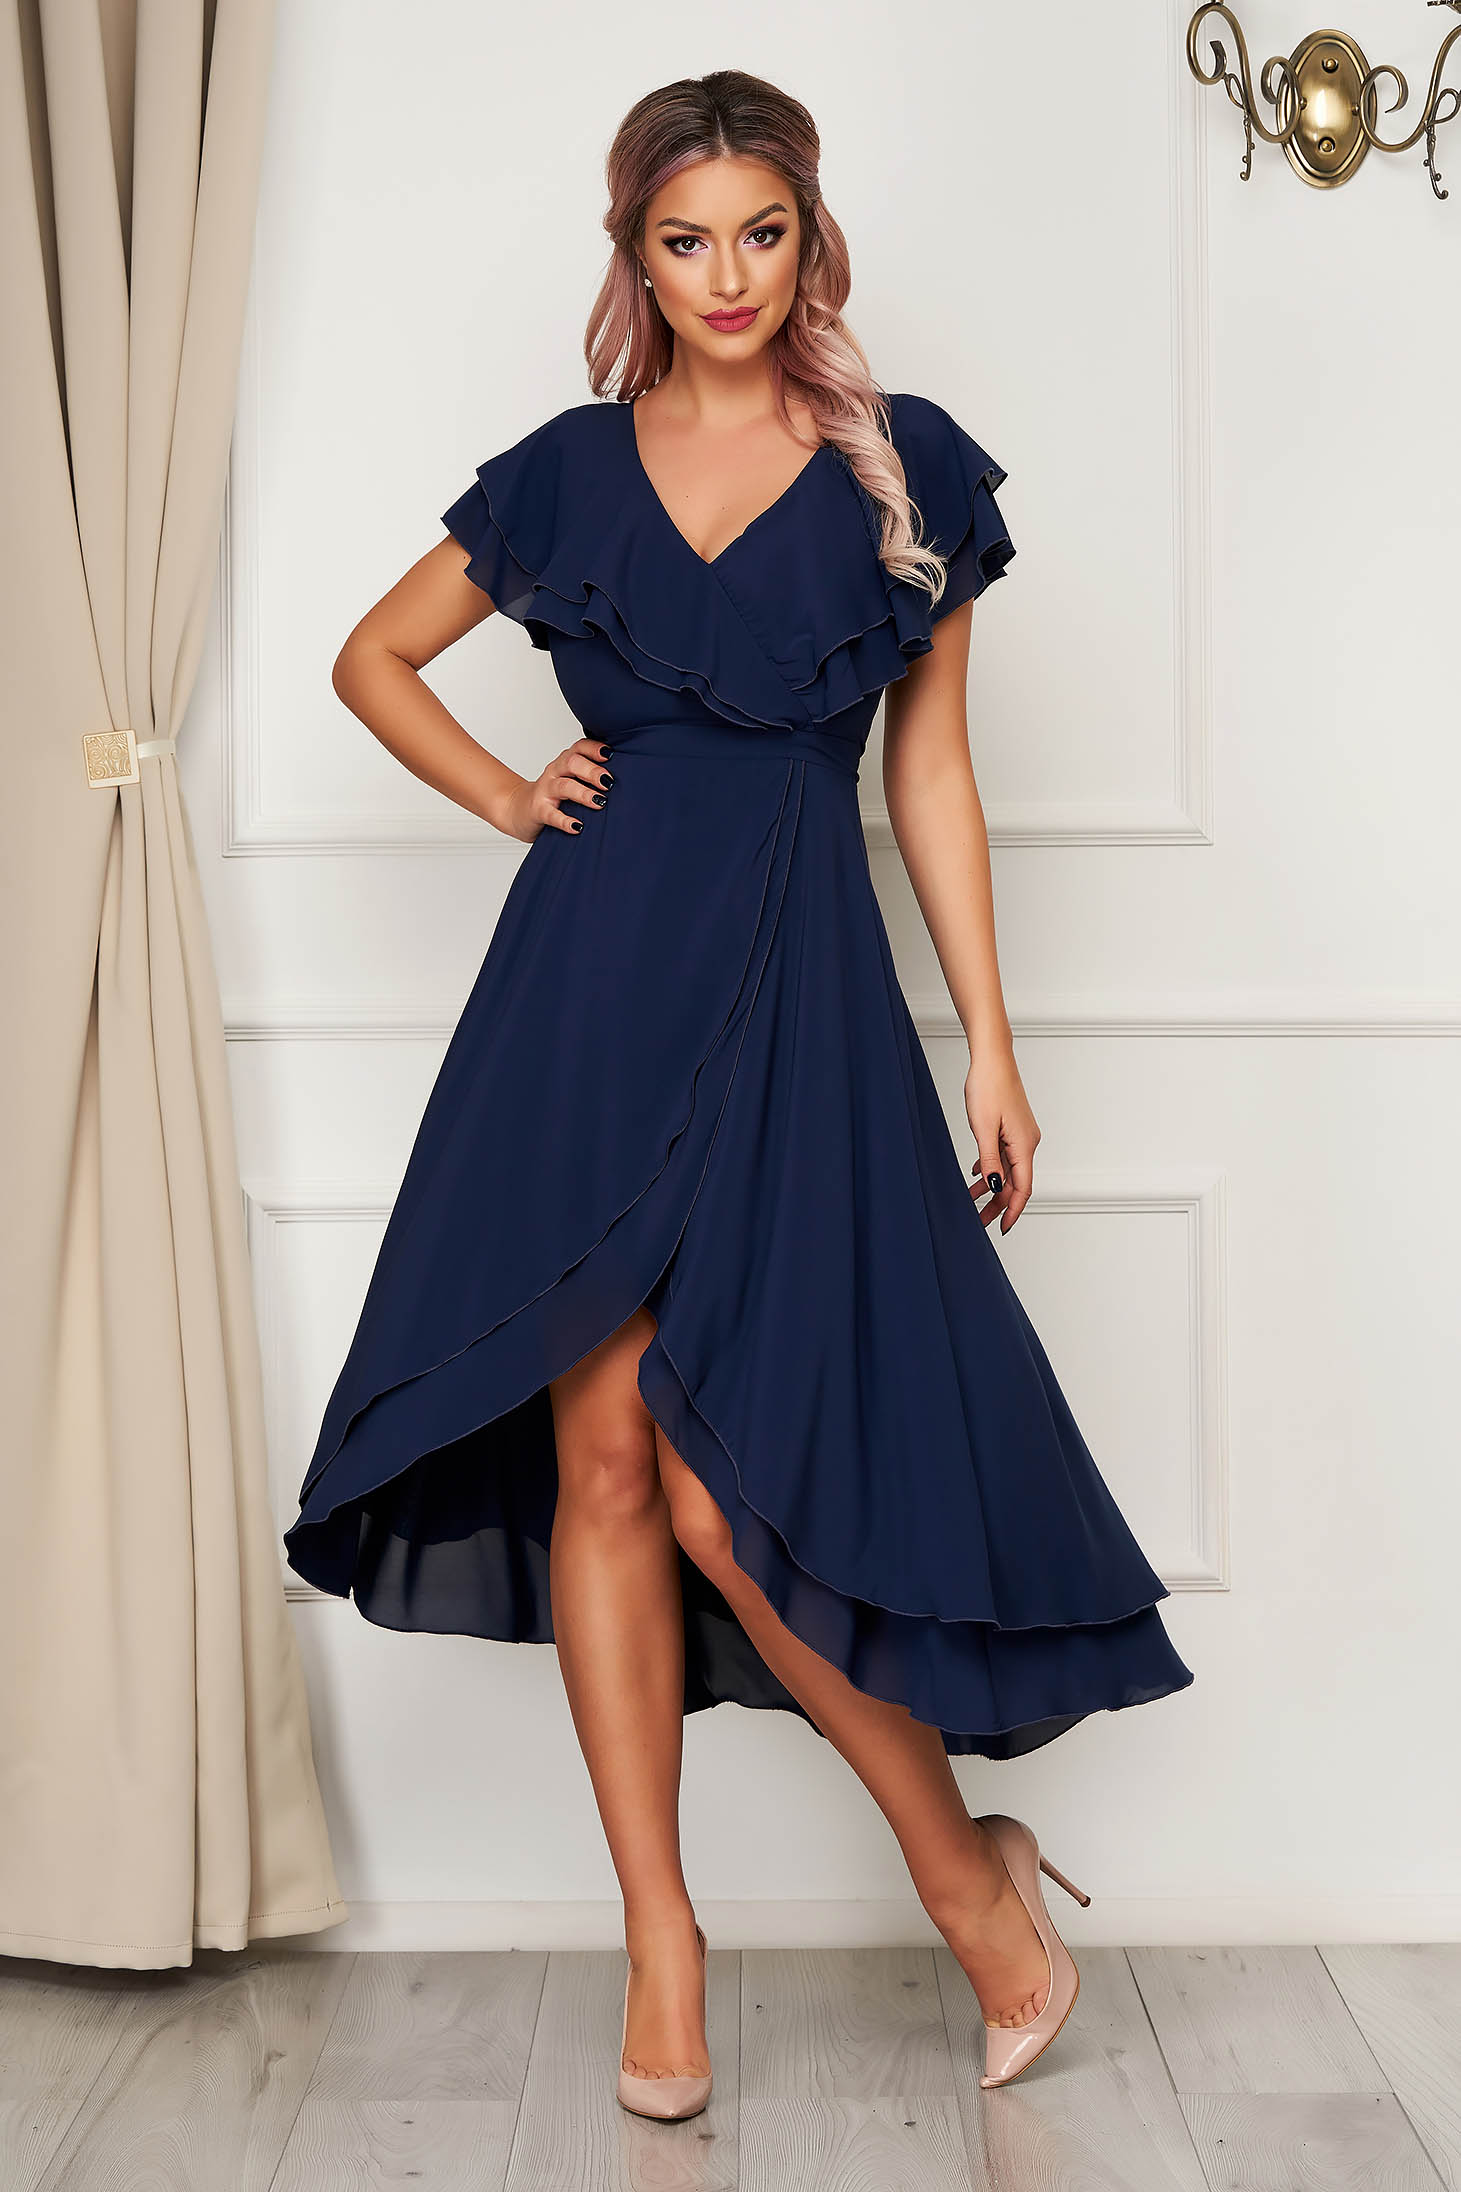 Dress StarShinerS darkblue occasional from veil fabric with ruffle details asymmetrical cloche